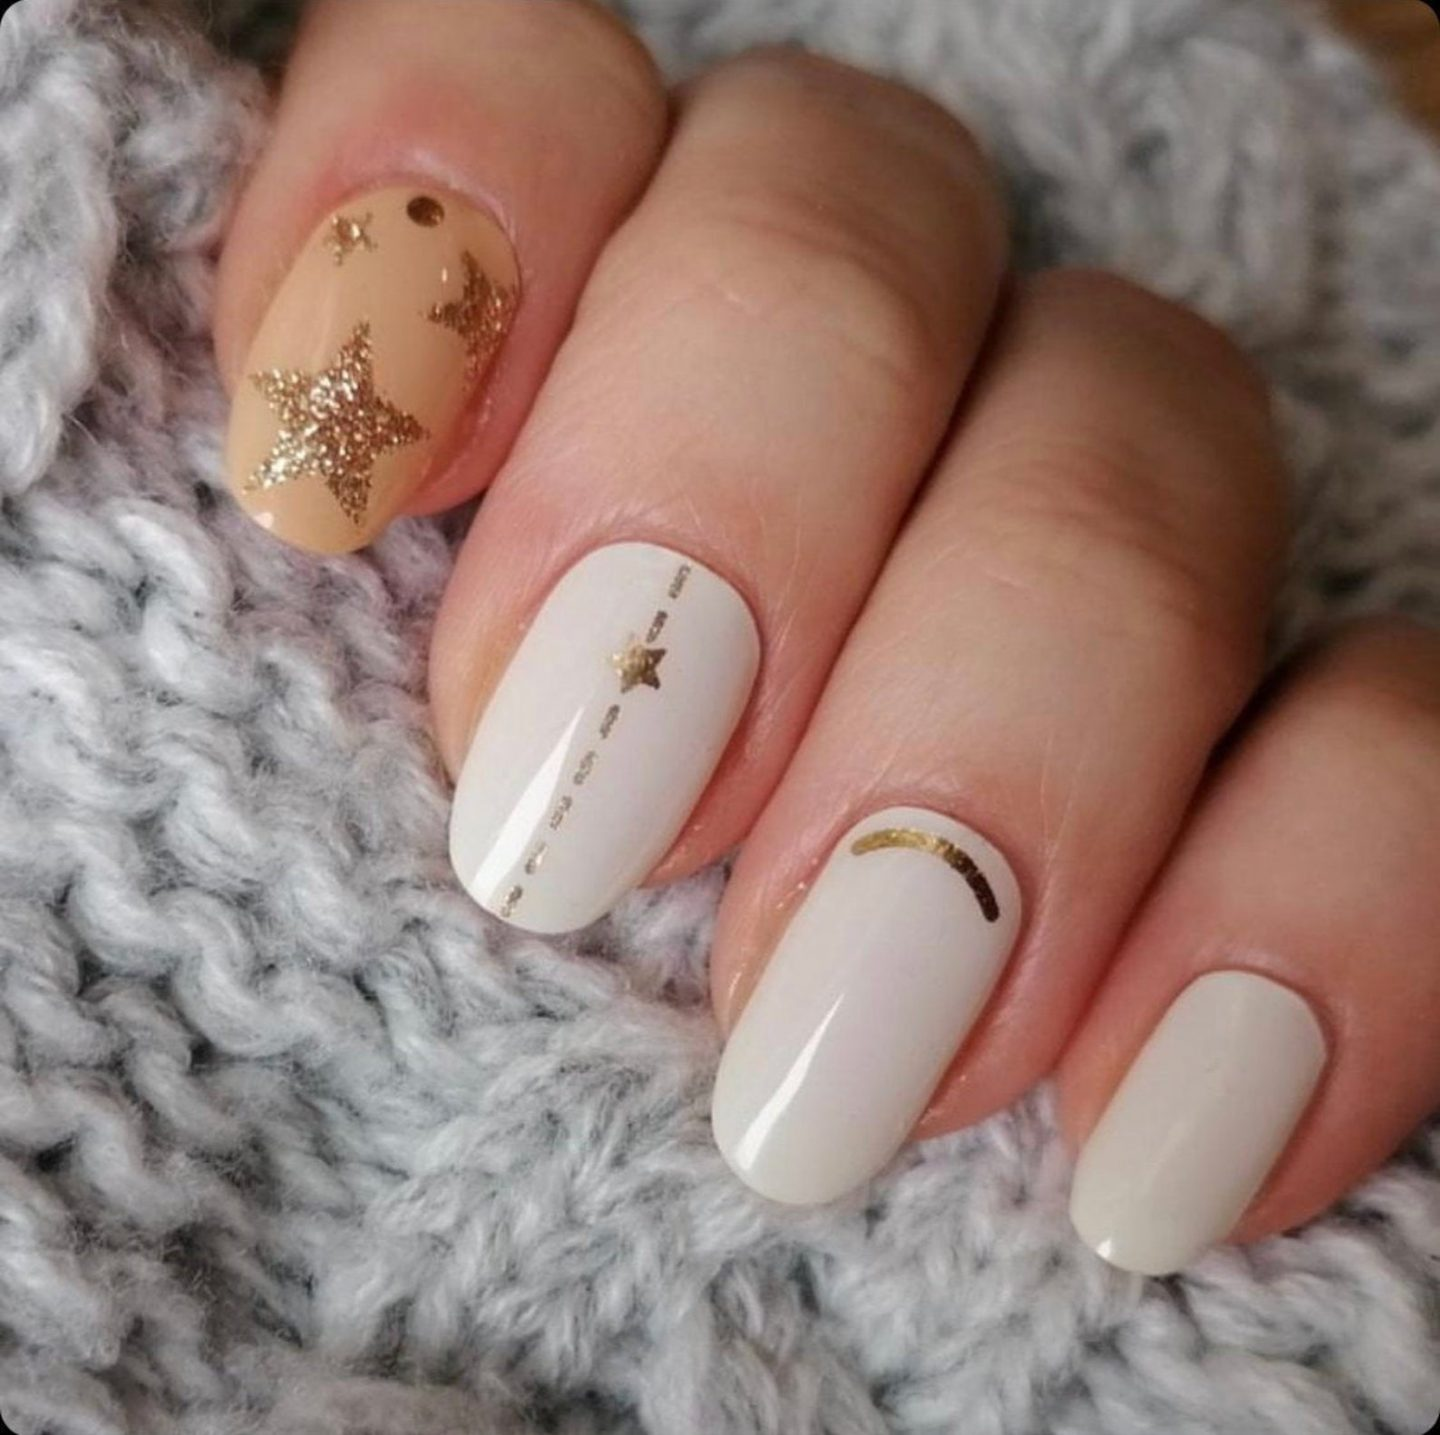 White and nude nail wraps with gold glitter